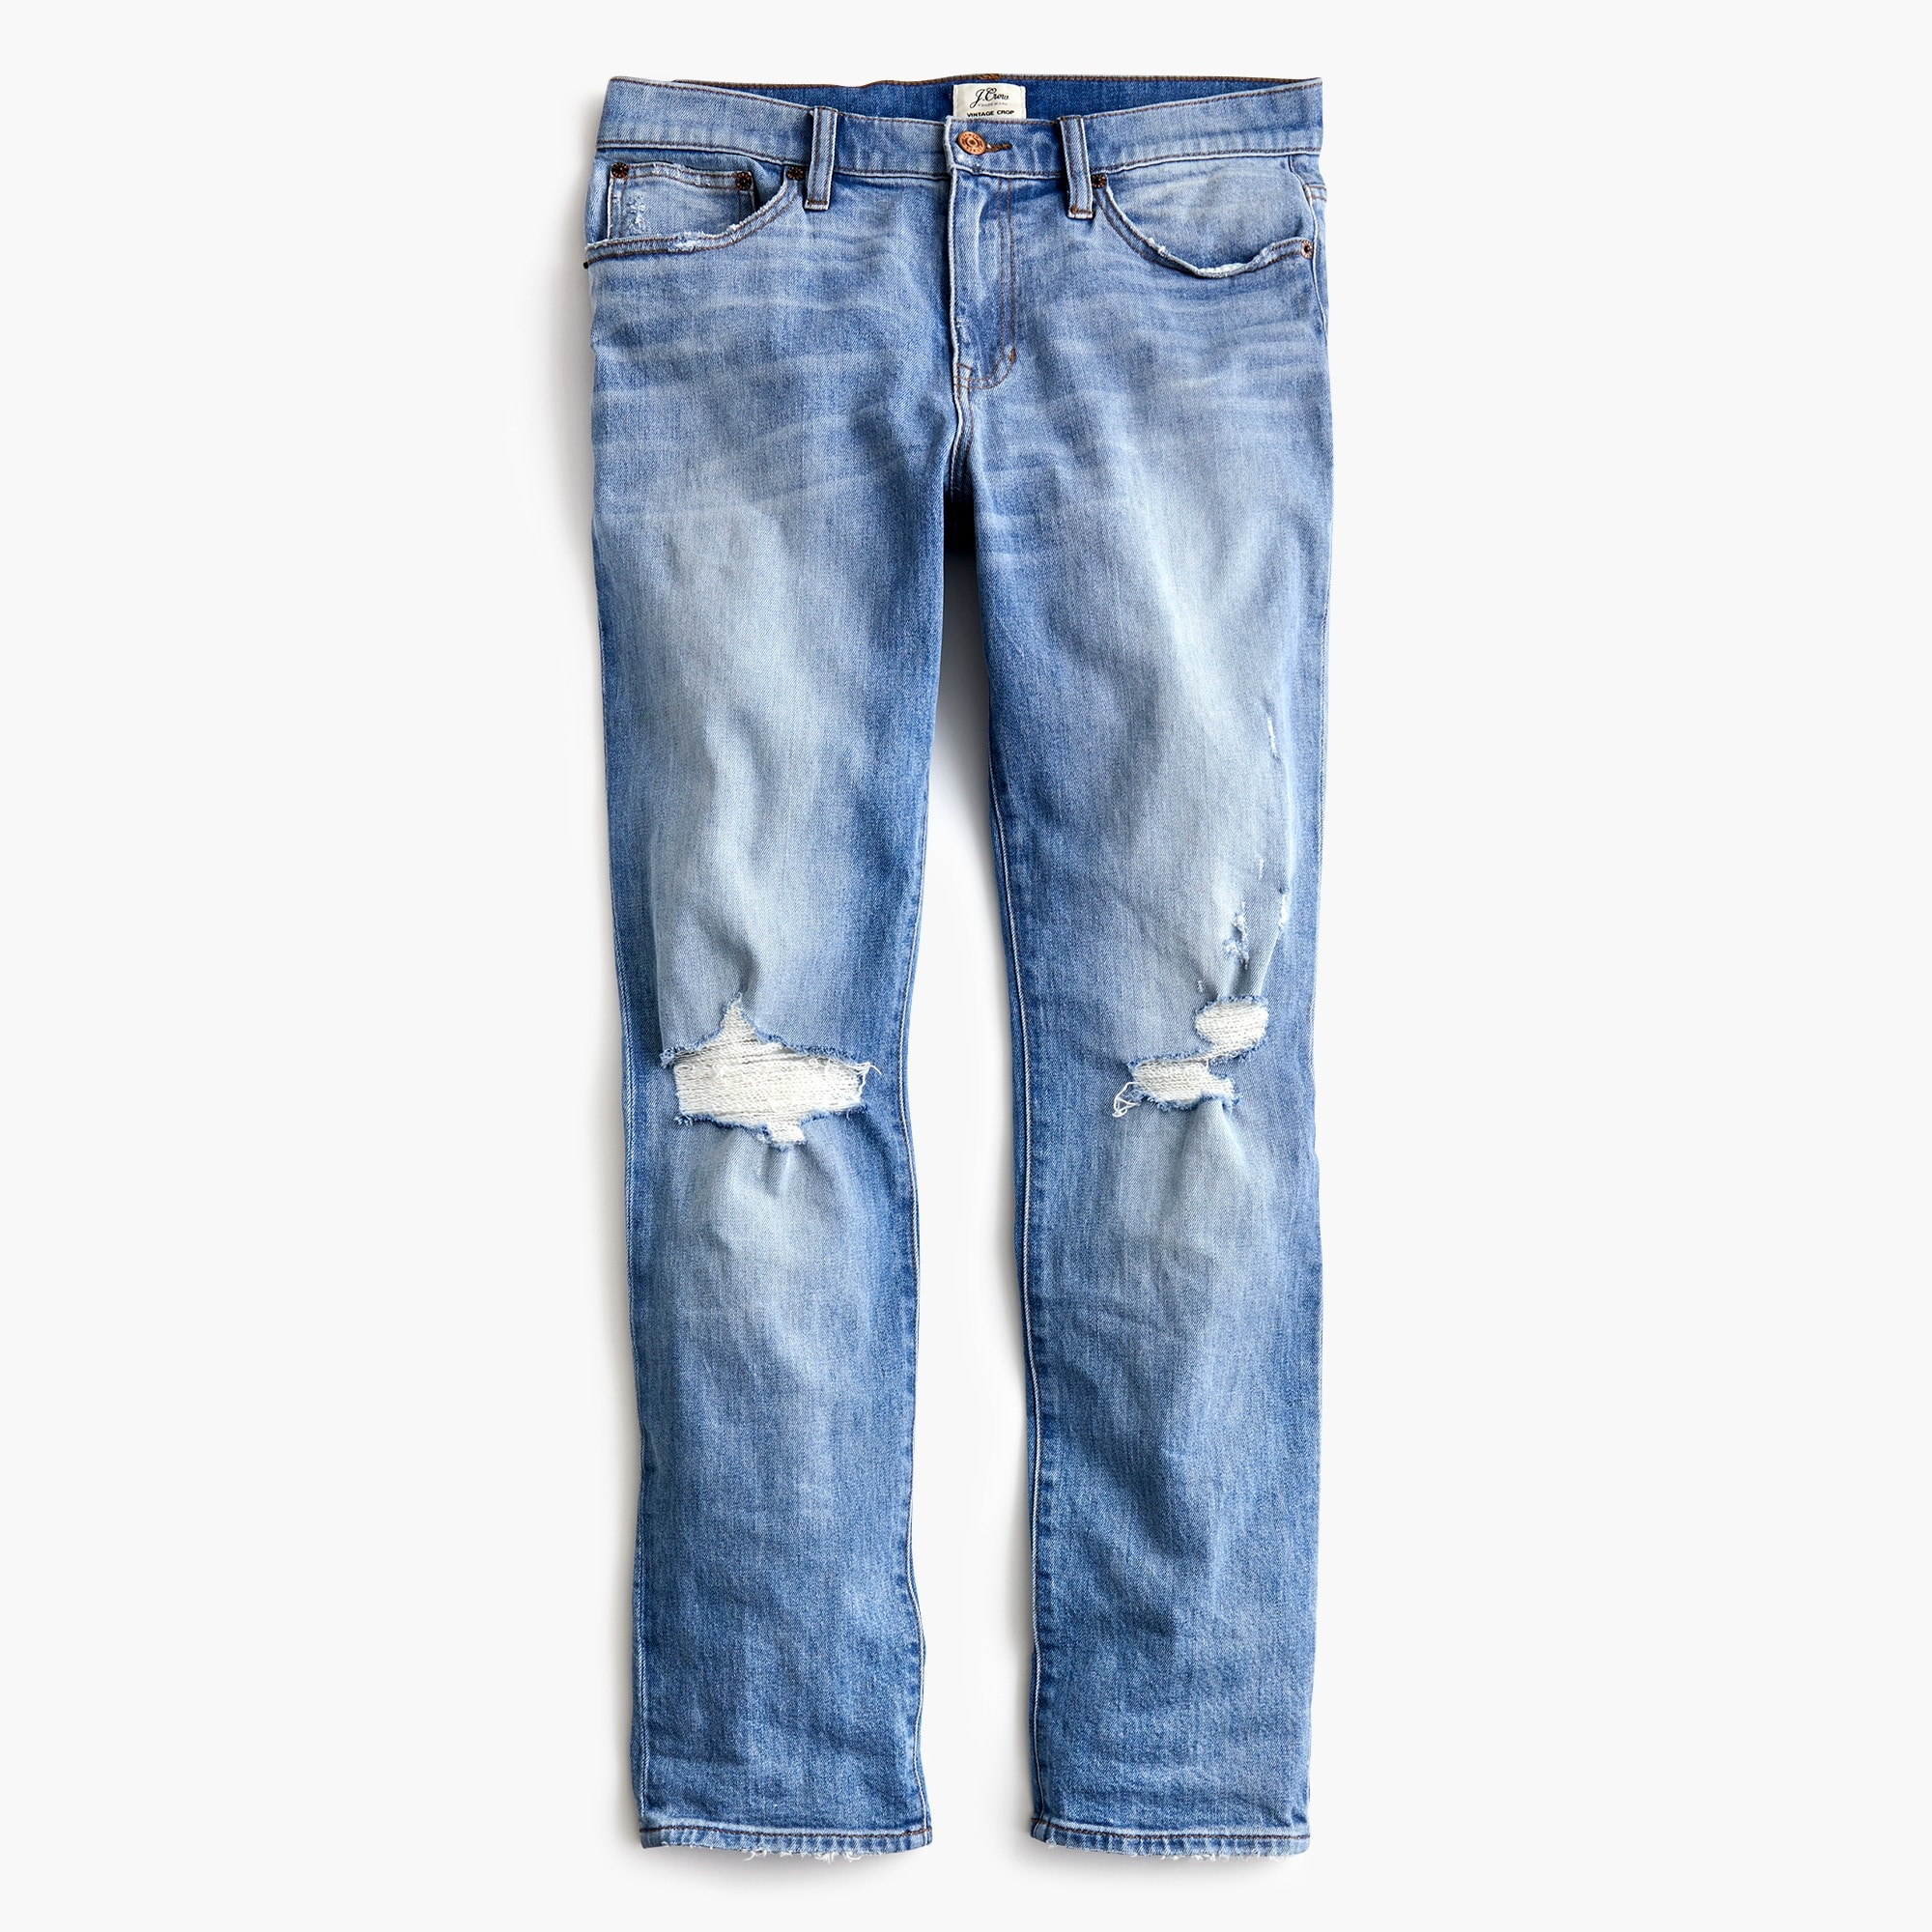 Image 3 for Slim boyfriend jean in Cedar wash